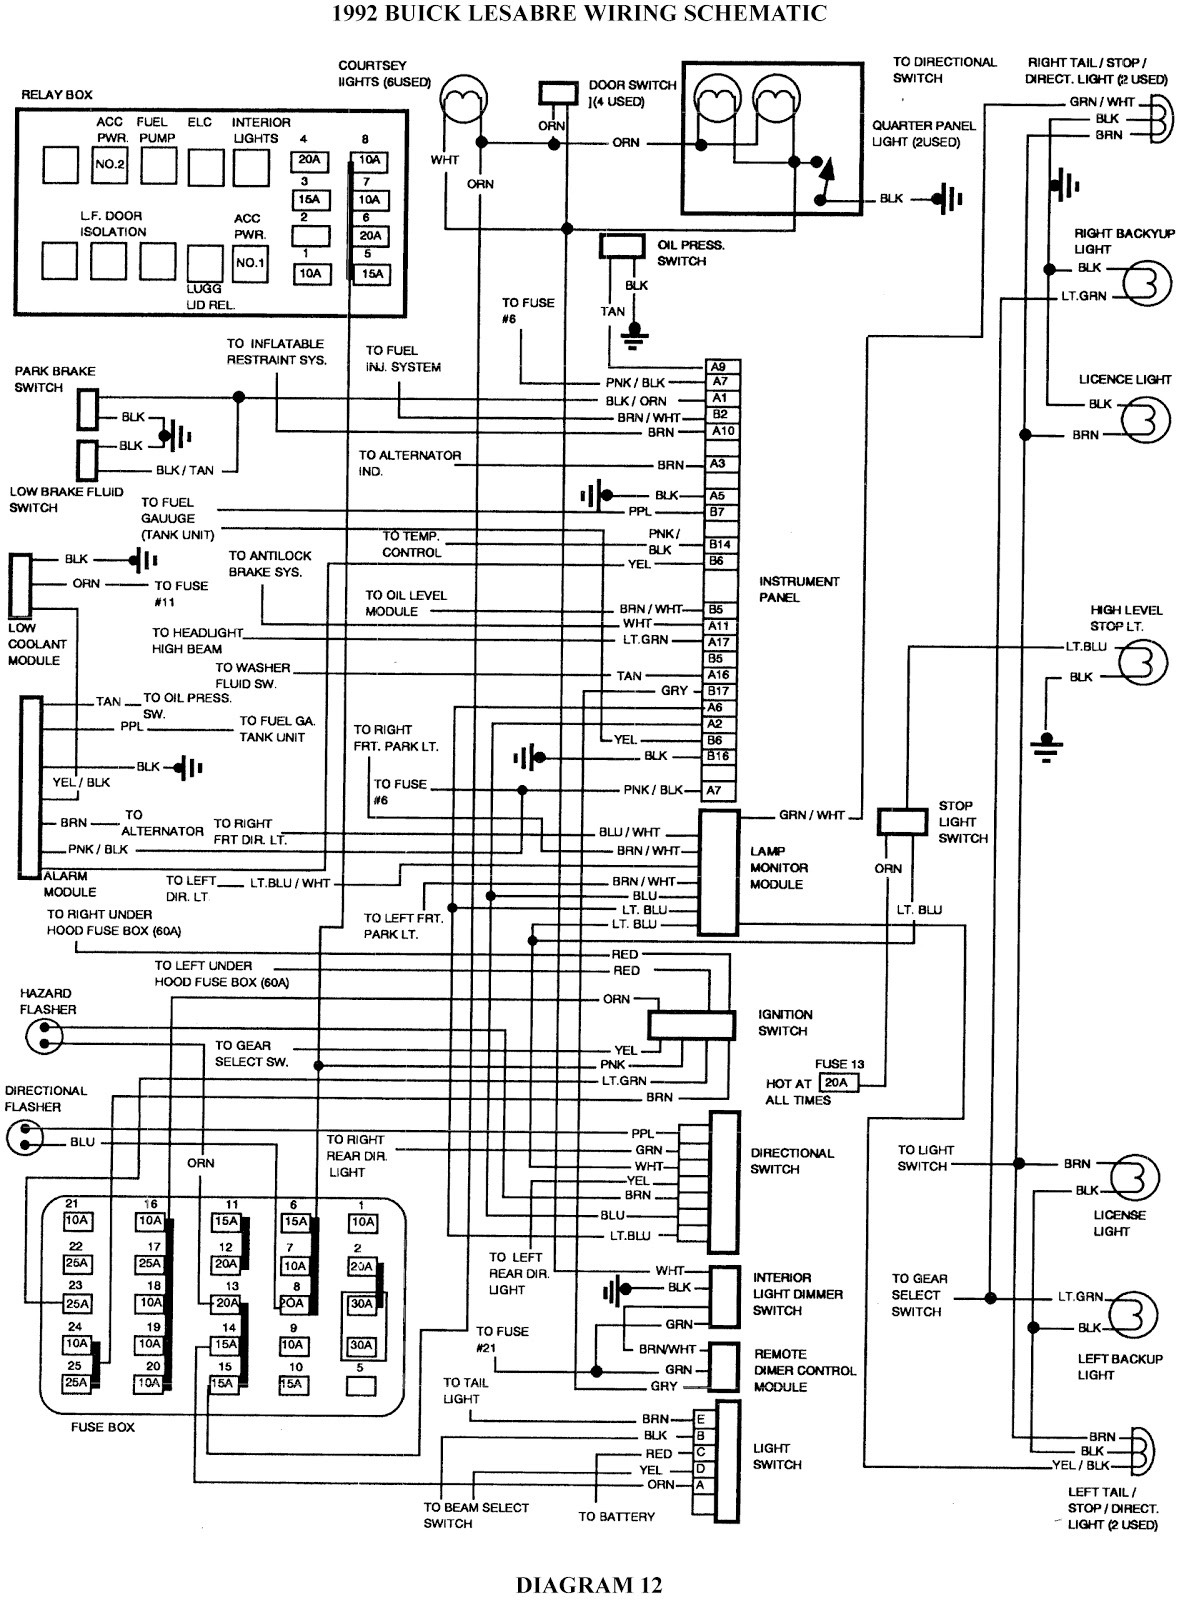 1979 corvette heater vacuum diagram nissan pathfinder fuse box diagram